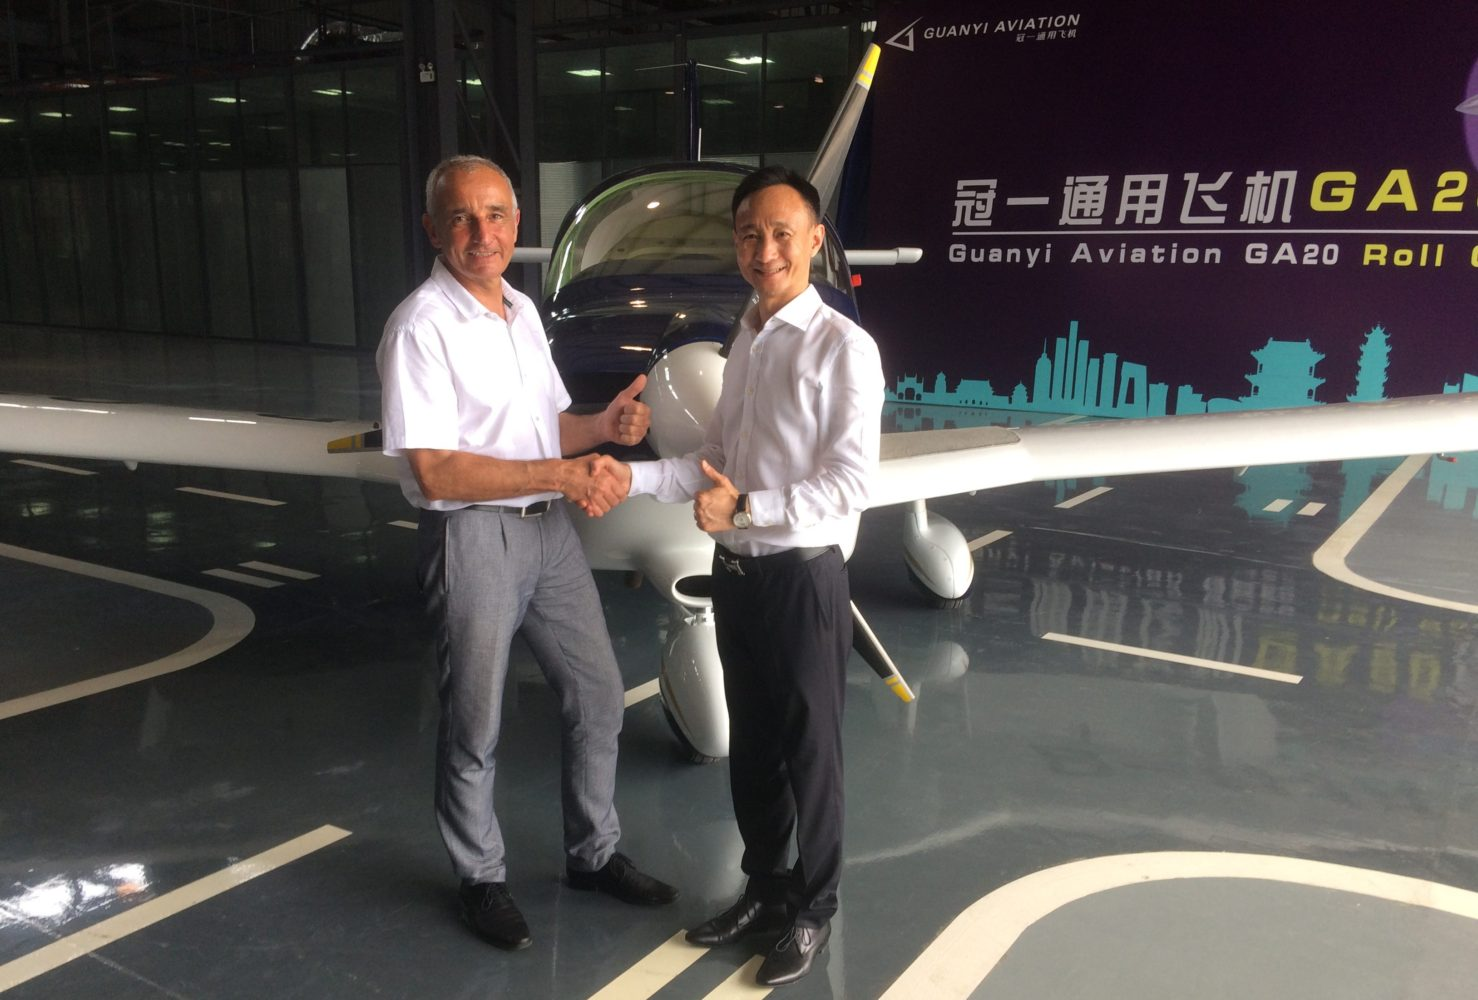 GA20 chinese composite aircraft